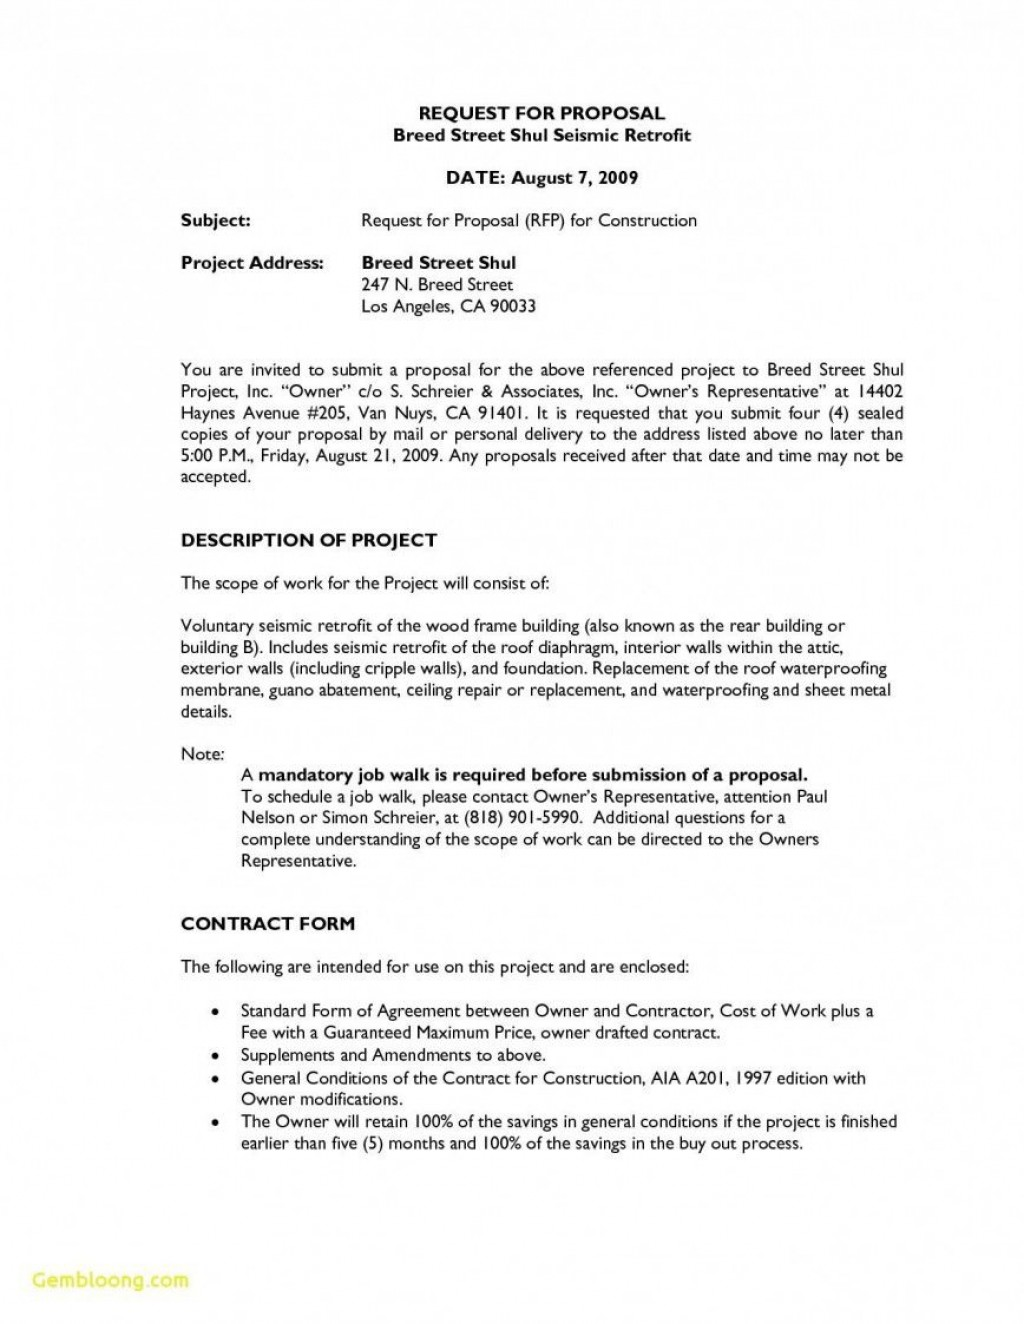 007 Excellent Request For Proposal Template Word Free High Def Large